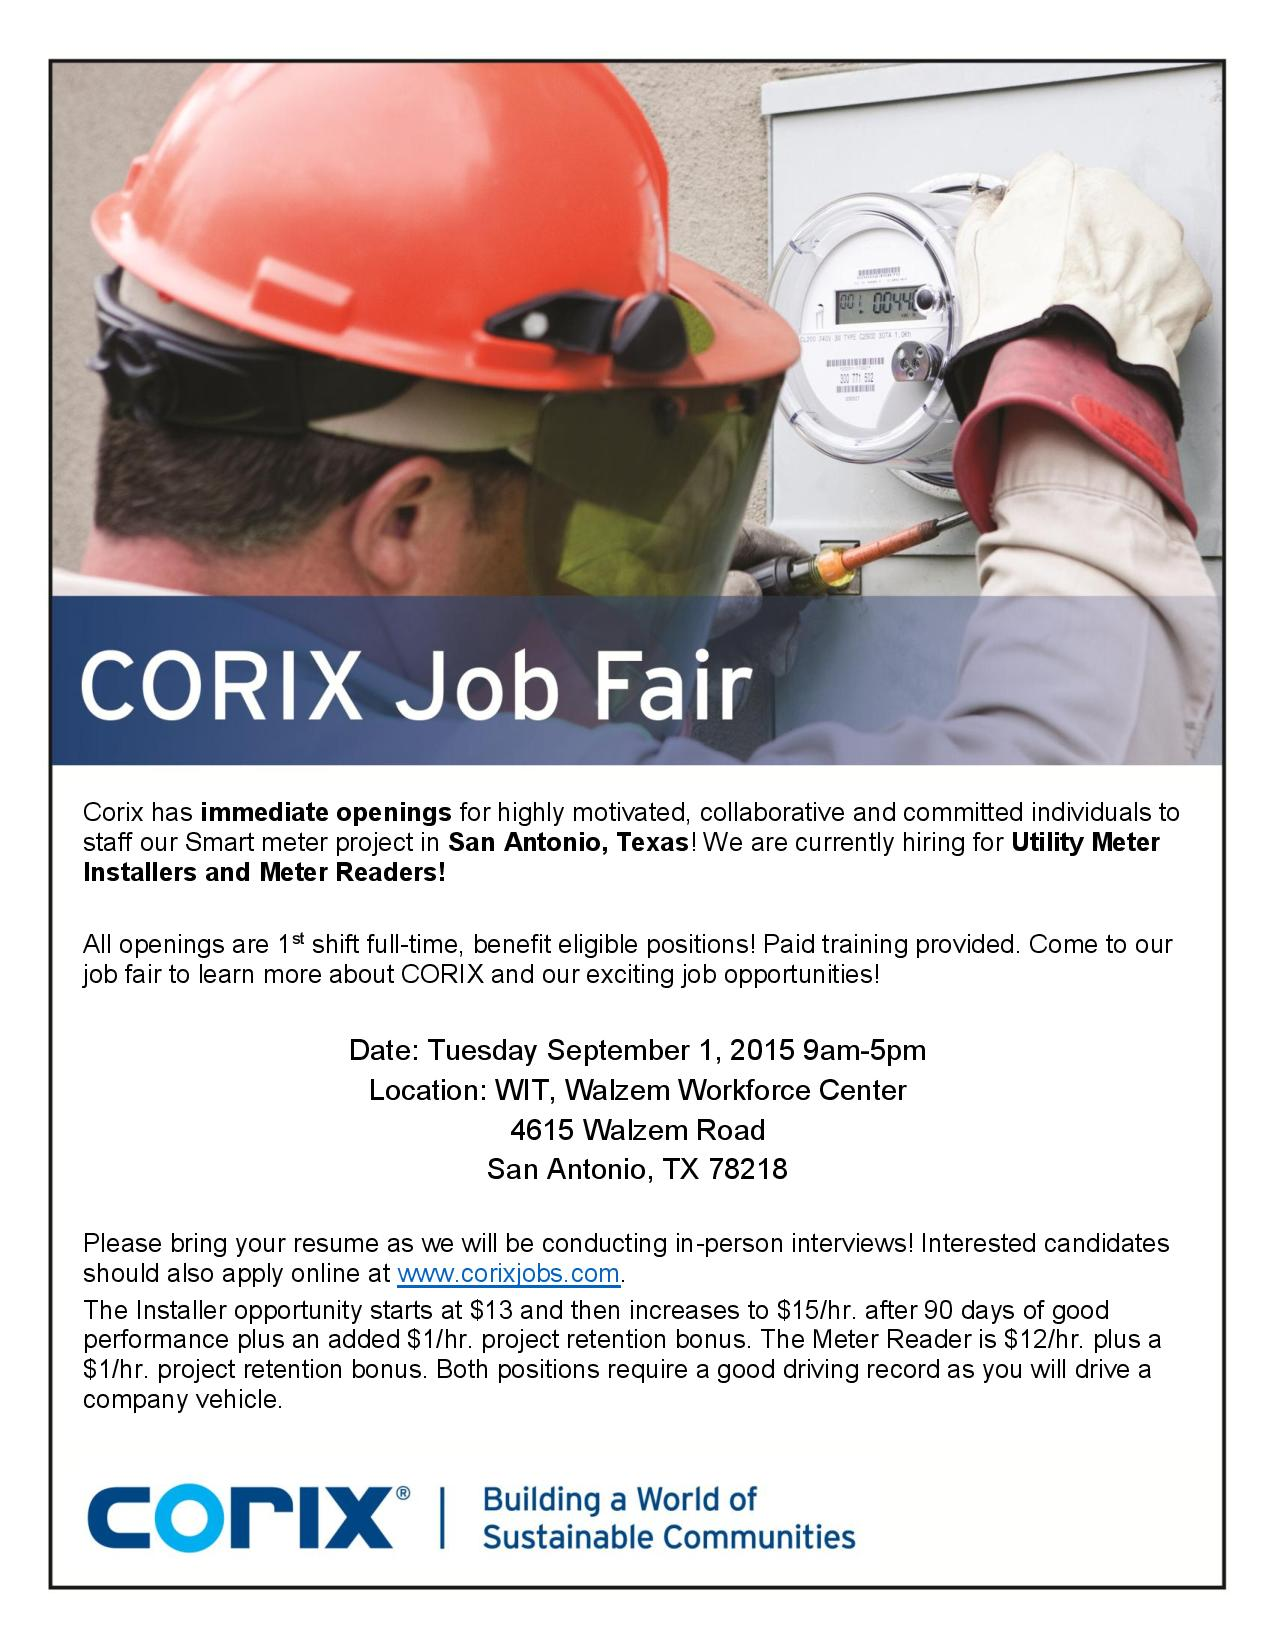 CPS Job Fair  doc 9 1 2015 flyer-page-001.jpg